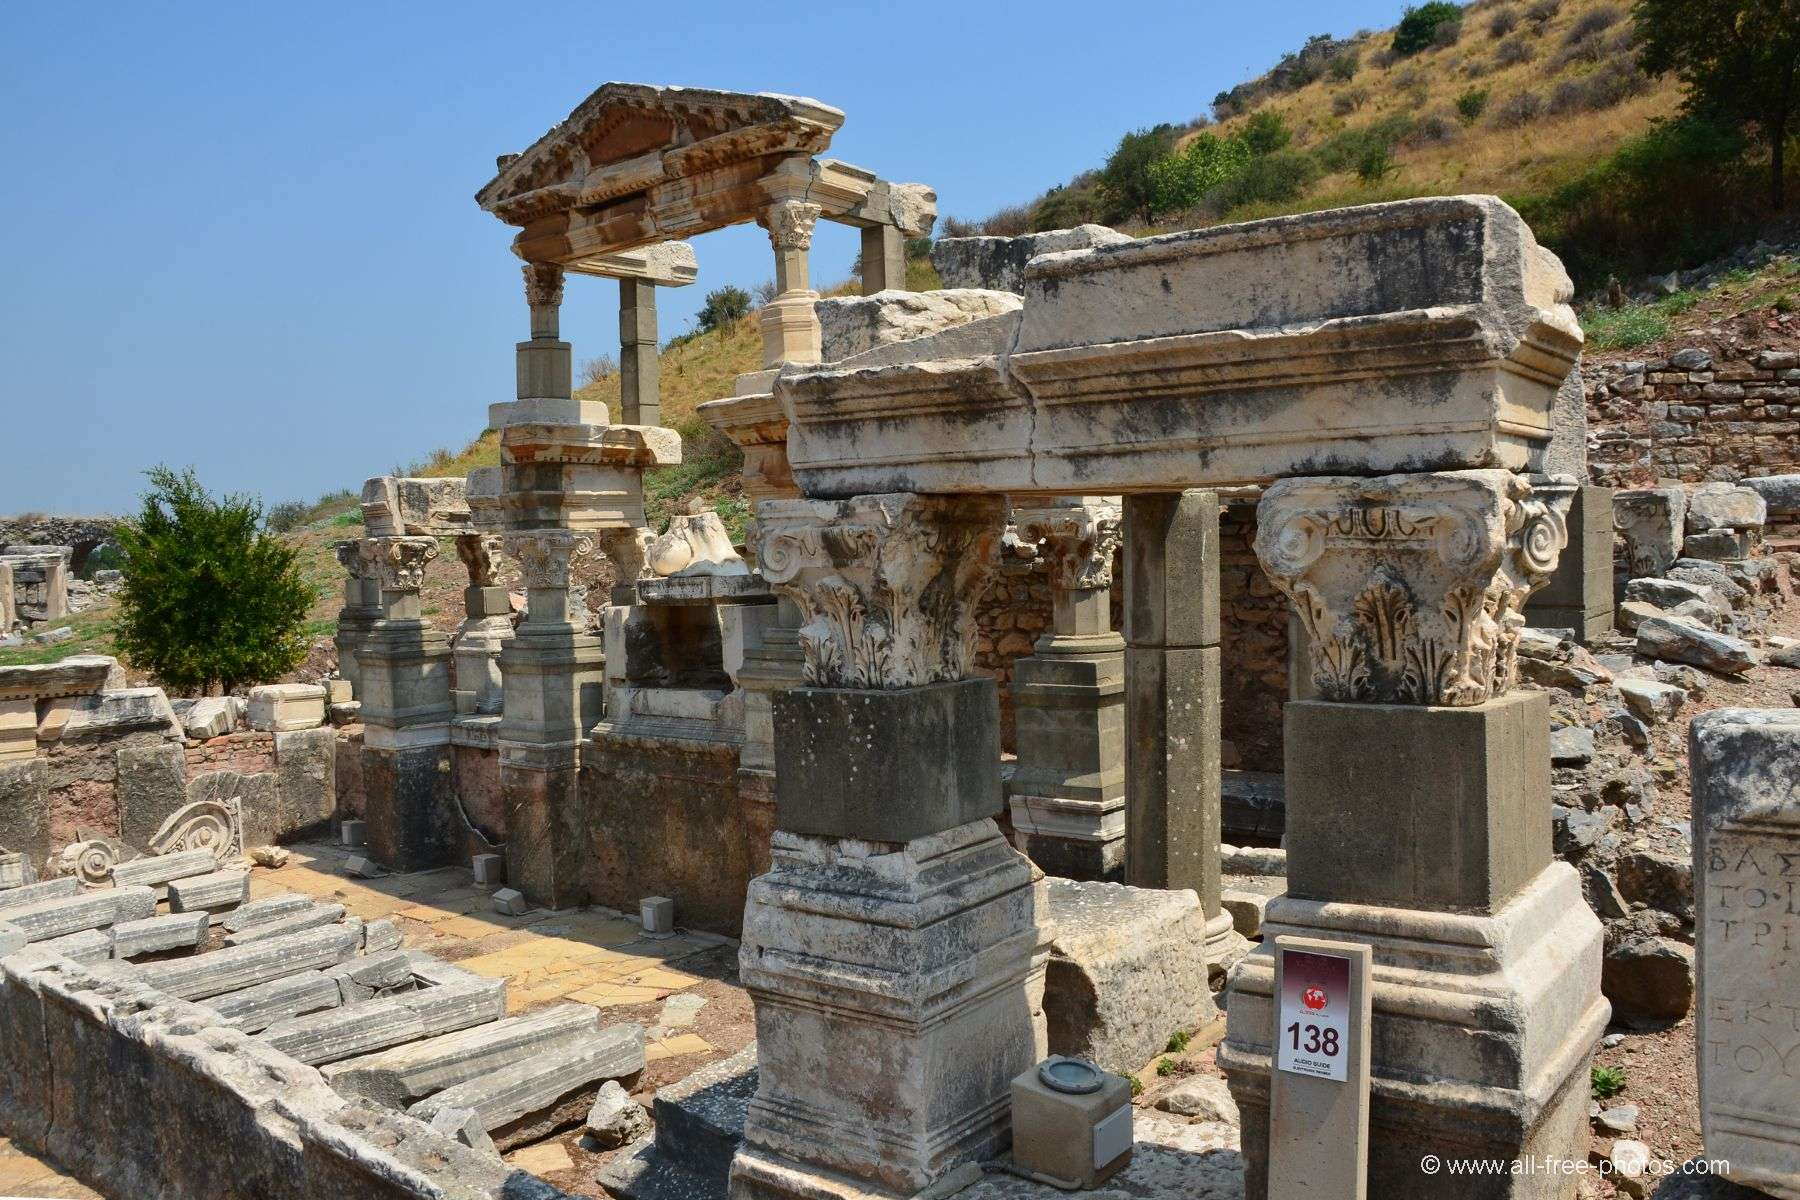 Home Galleries Landscapes Turkey Ephesus Ephesus - Turkey: all-free-photos.com/show/showphoto.php?idph=pi72924&lang=d